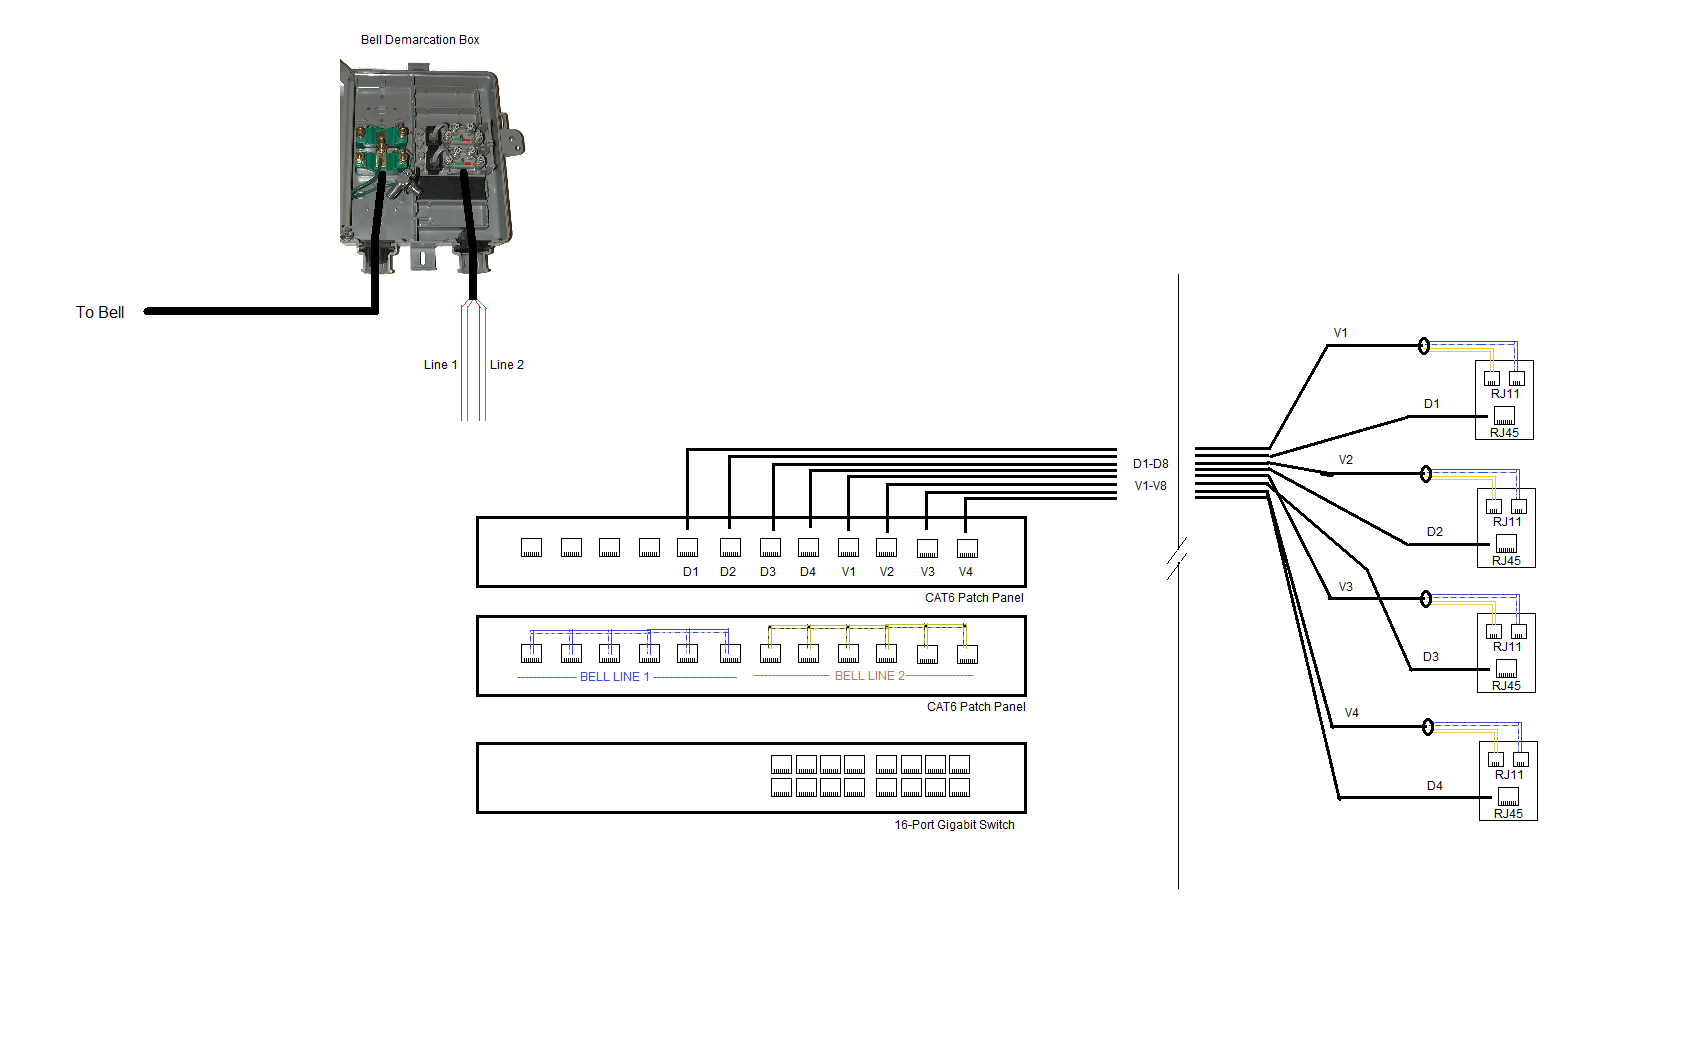 Wiring Telephone And Data On The Same Patch Panel Distribution Box Plan For